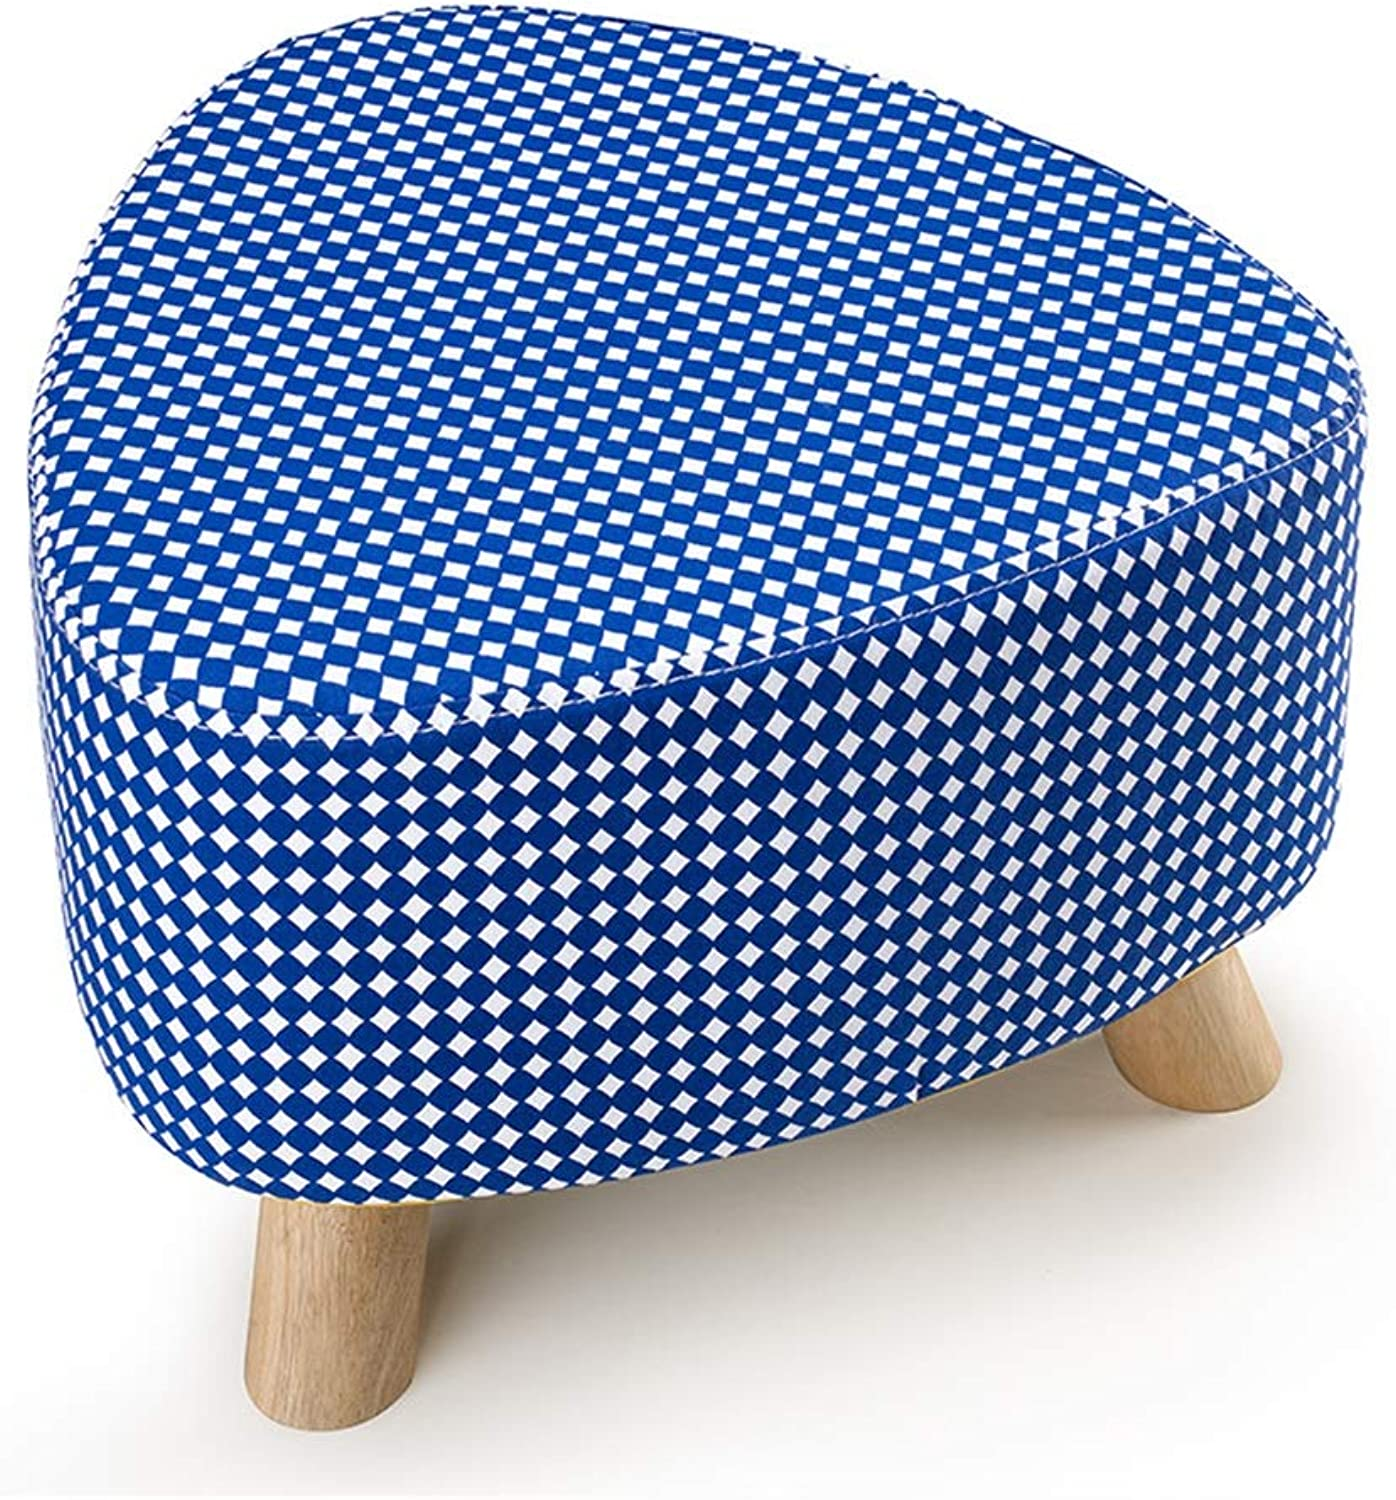 SUNNY Solid Wood Change shoes Bench Detachable Fabric Sofa Stool Colourful Modern Three Feet Small Stool (color   C5)